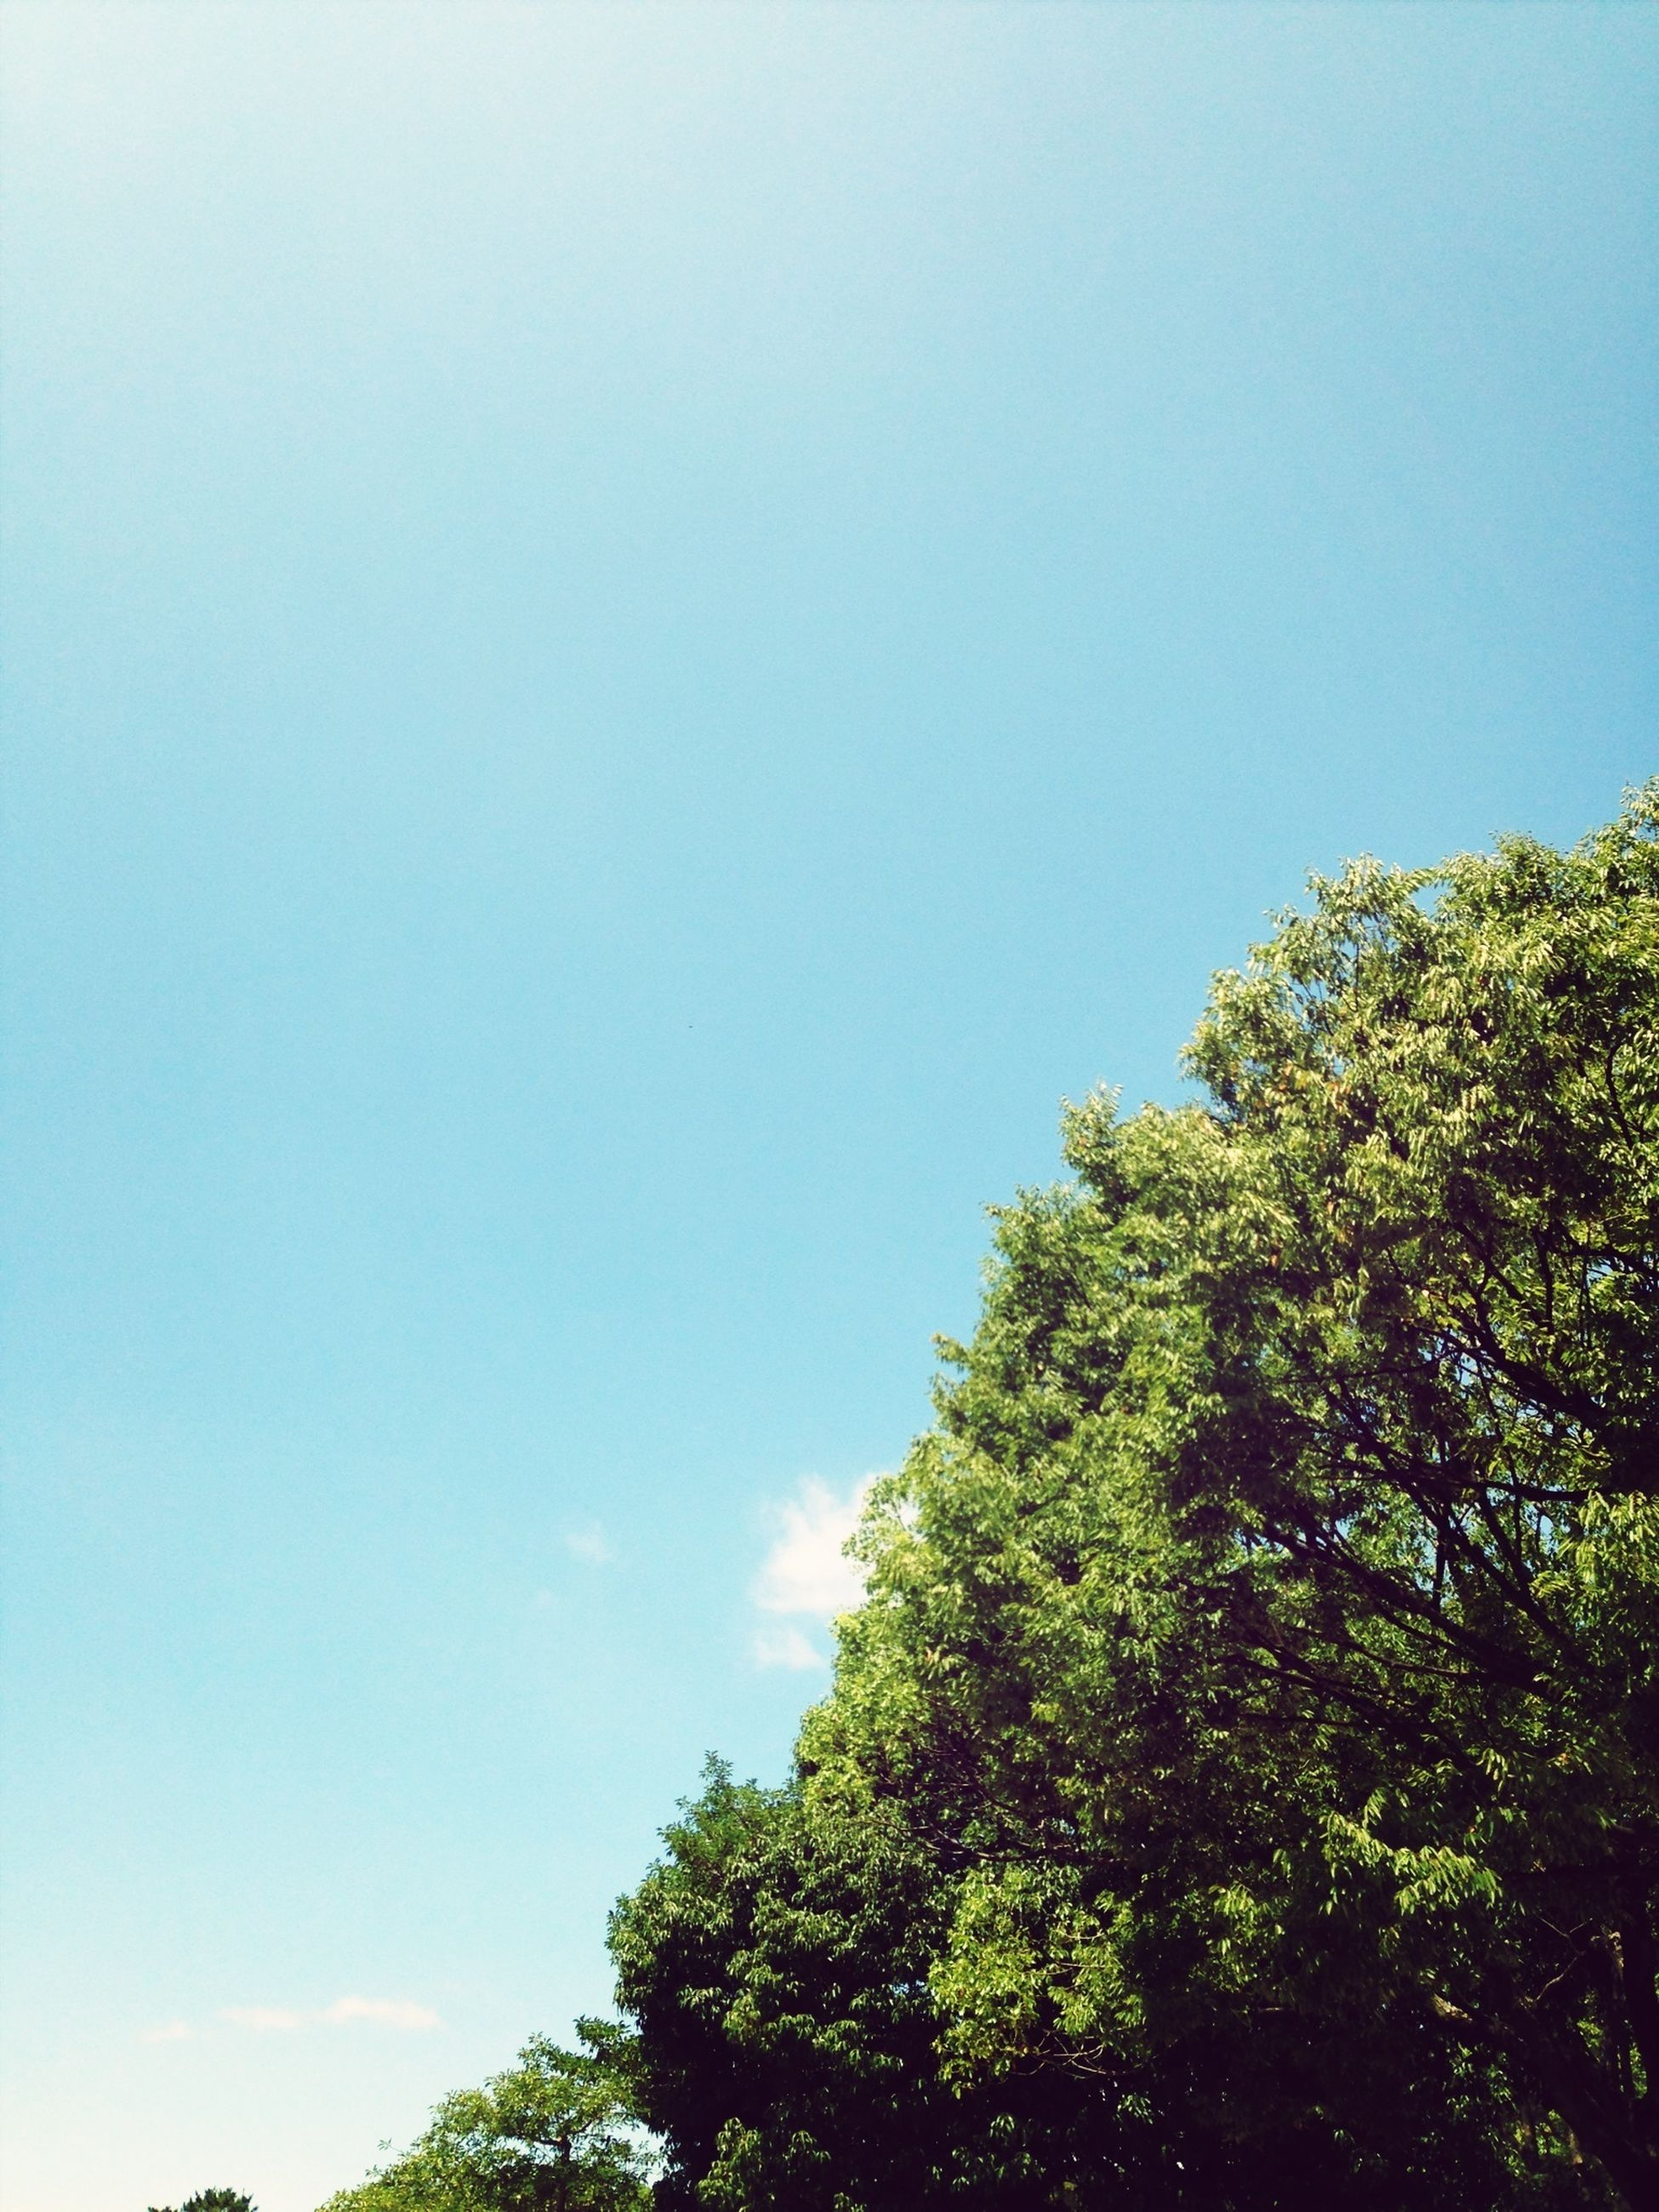 tree, low angle view, clear sky, copy space, blue, growth, beauty in nature, nature, green color, tranquility, sky, high section, treetop, scenics, tranquil scene, branch, day, outdoors, lush foliage, no people